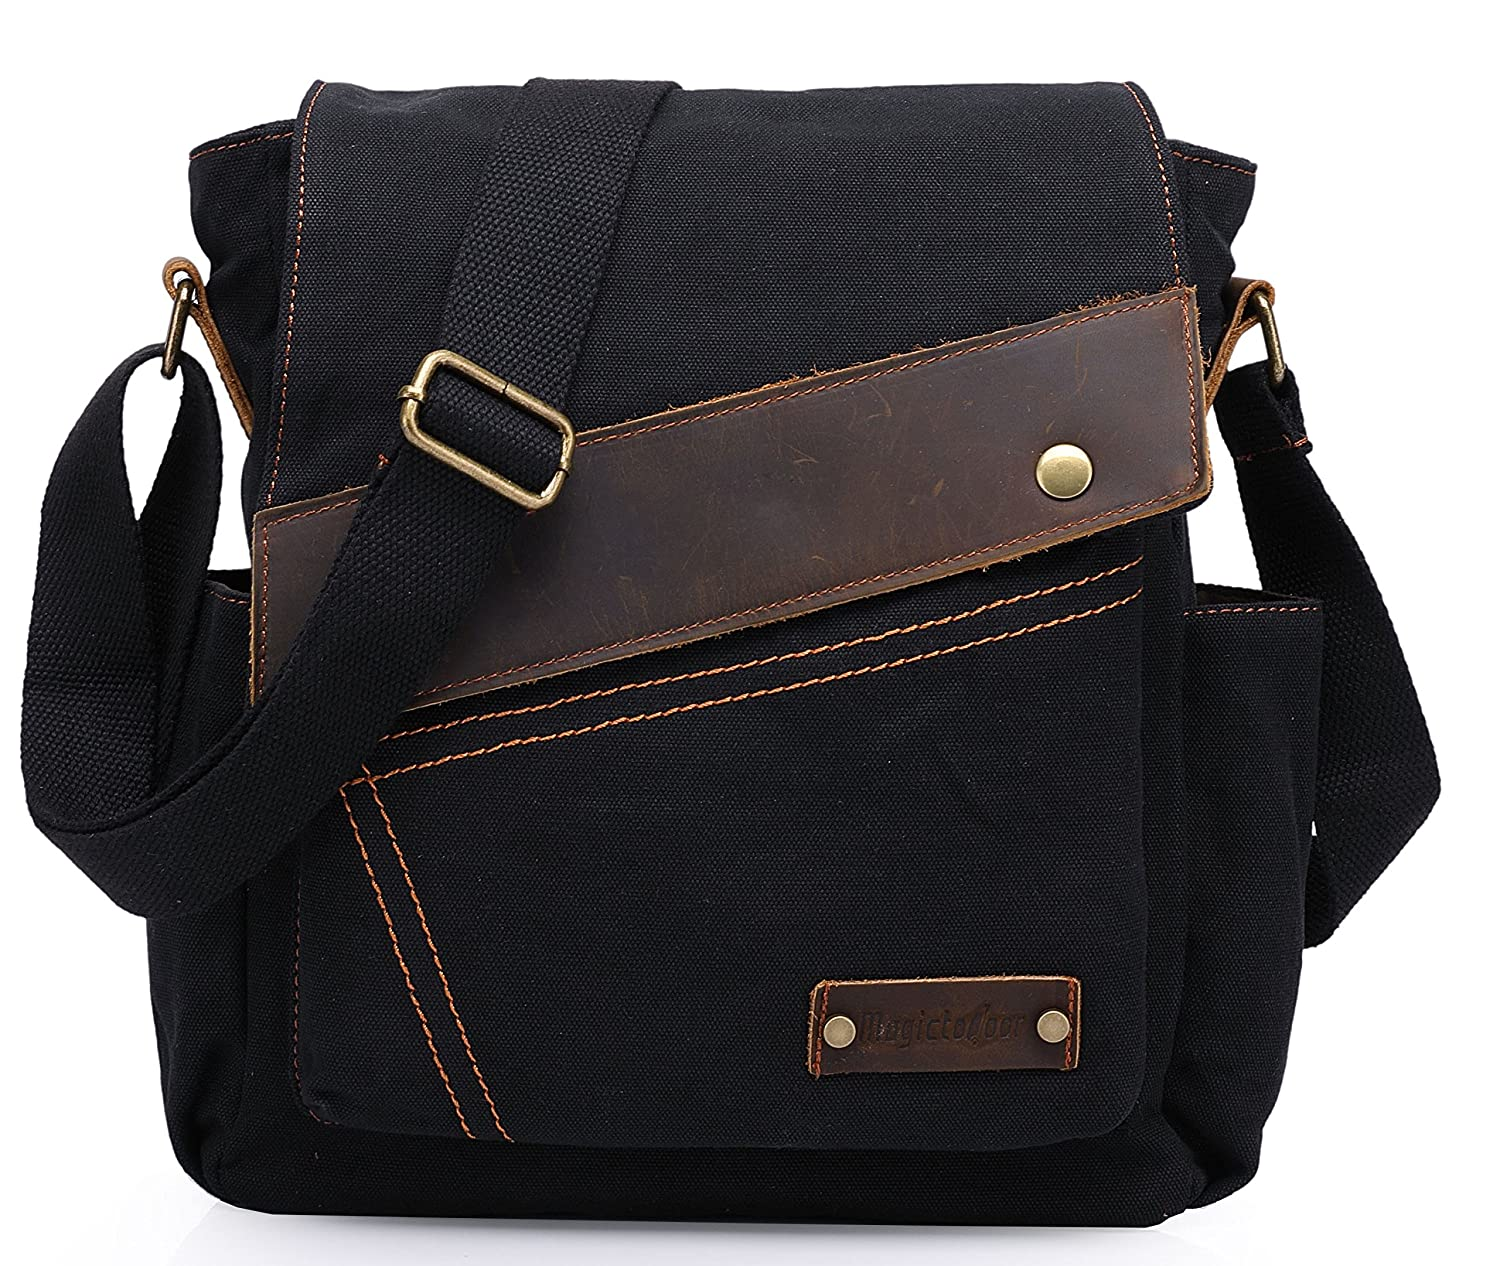 Magictodoor Vintage Canvas Messenger Bag Ipad Shoulder Bag Travel Portfolio Bag w/Side Pockets 9087 Brown 9089 Coffee.ca